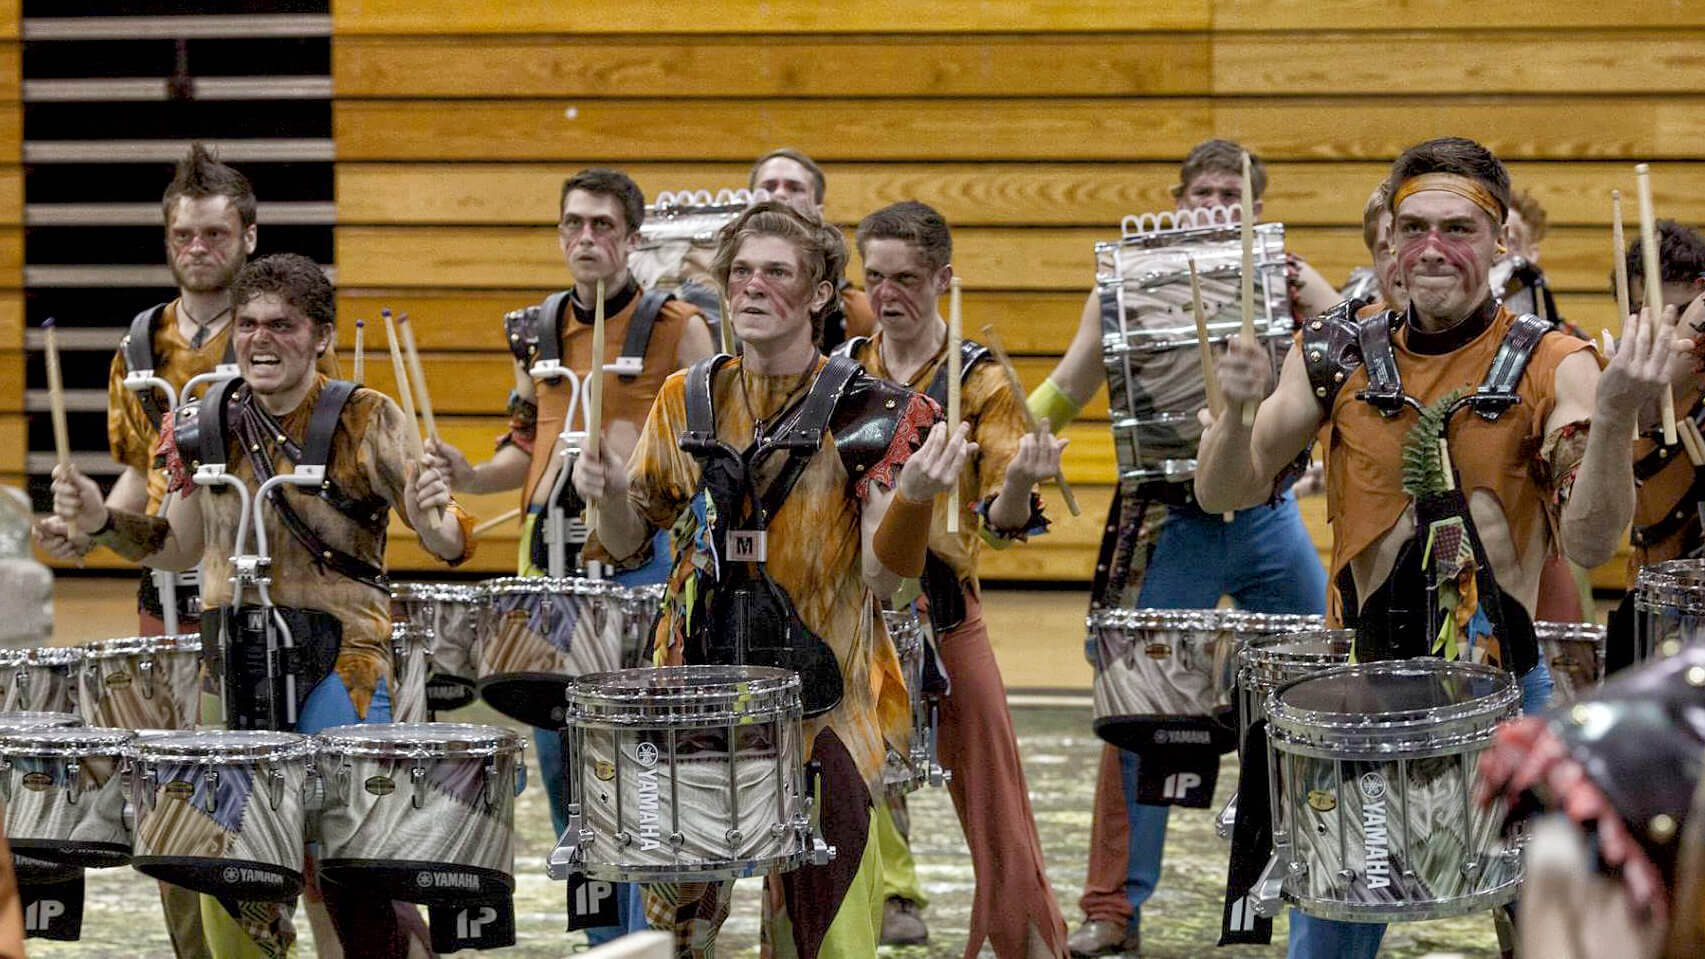 Groups to watch at this week's WGI Percussion Championships